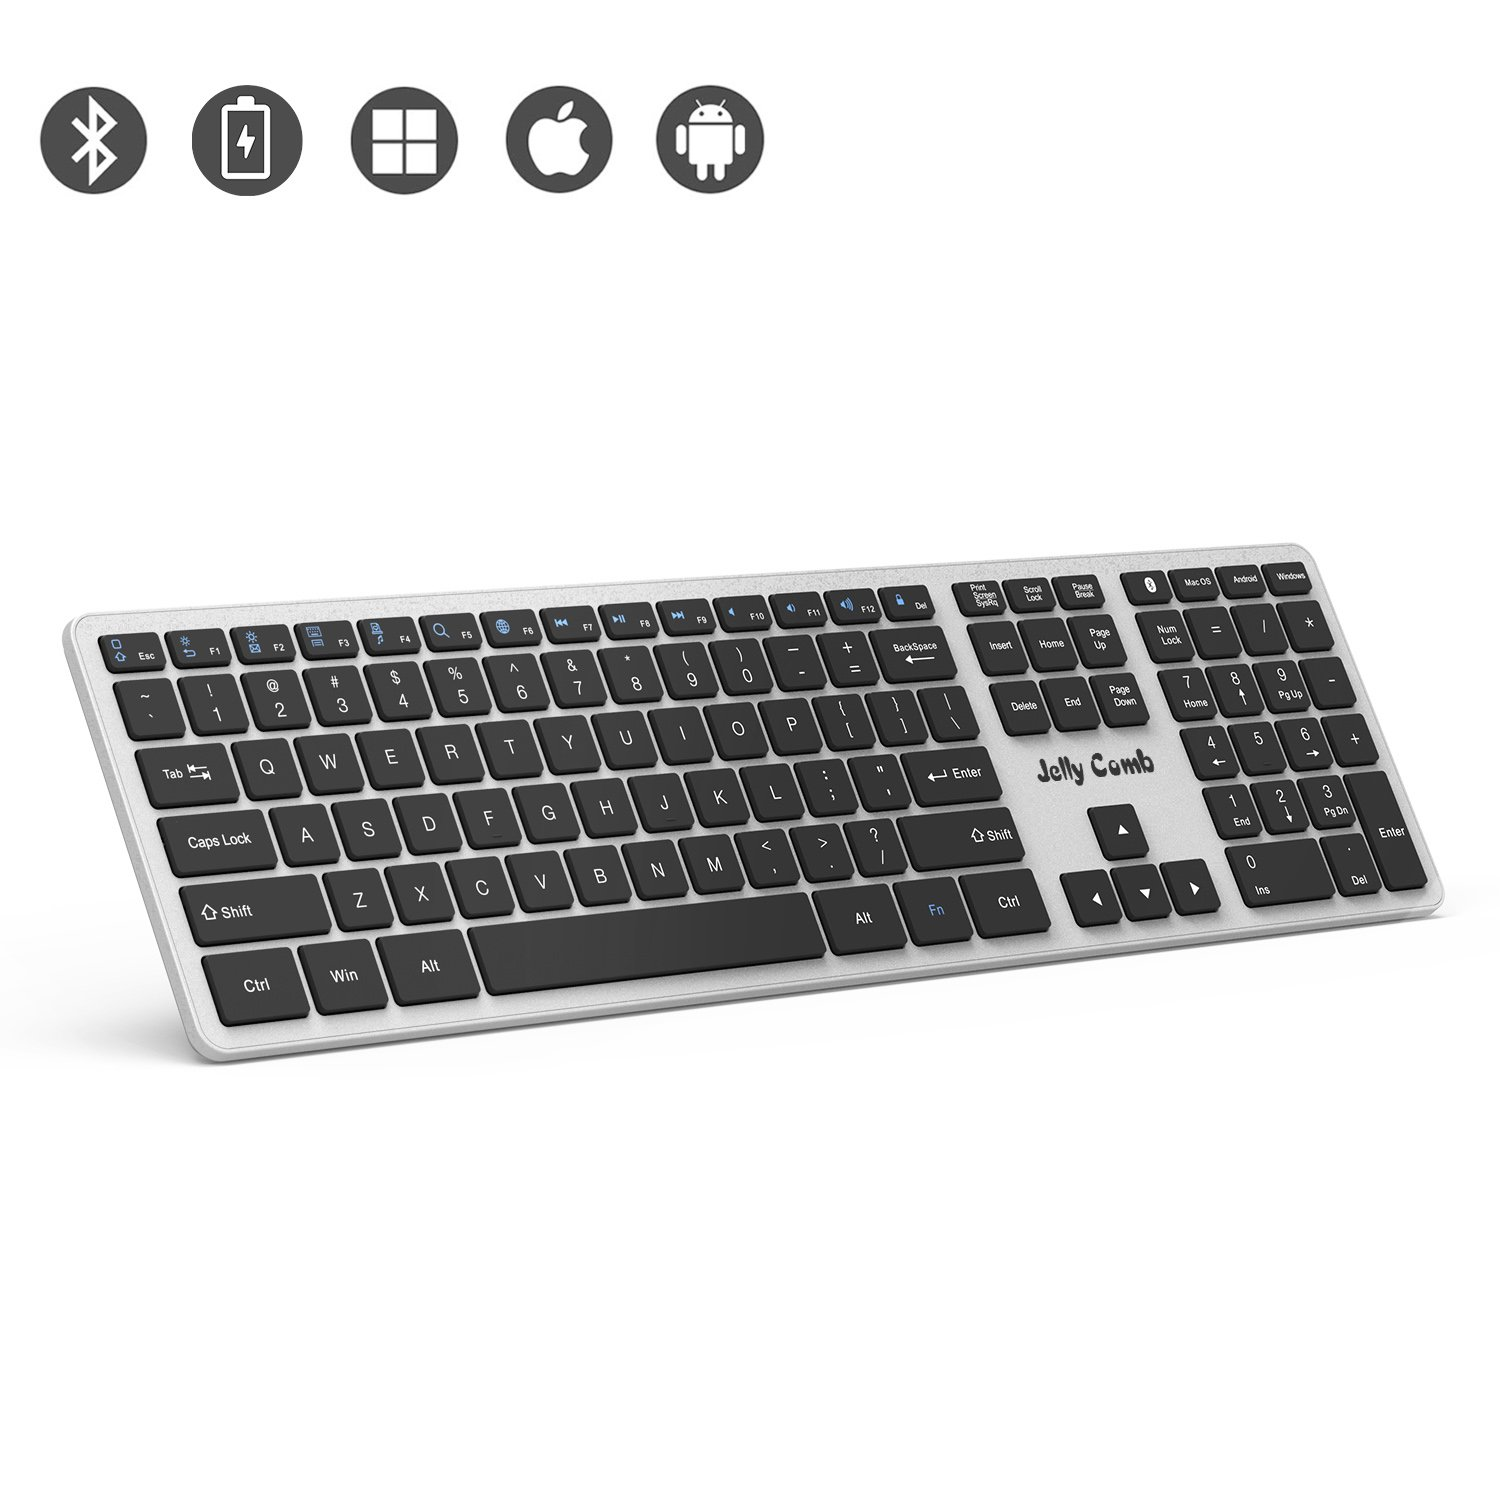 be65df7dbac outlet Bluetooth Keyboard — Jelly Comb K049 Full Size Bluetooth  Rechargeable Keyboard Ultra Slim Universal Design